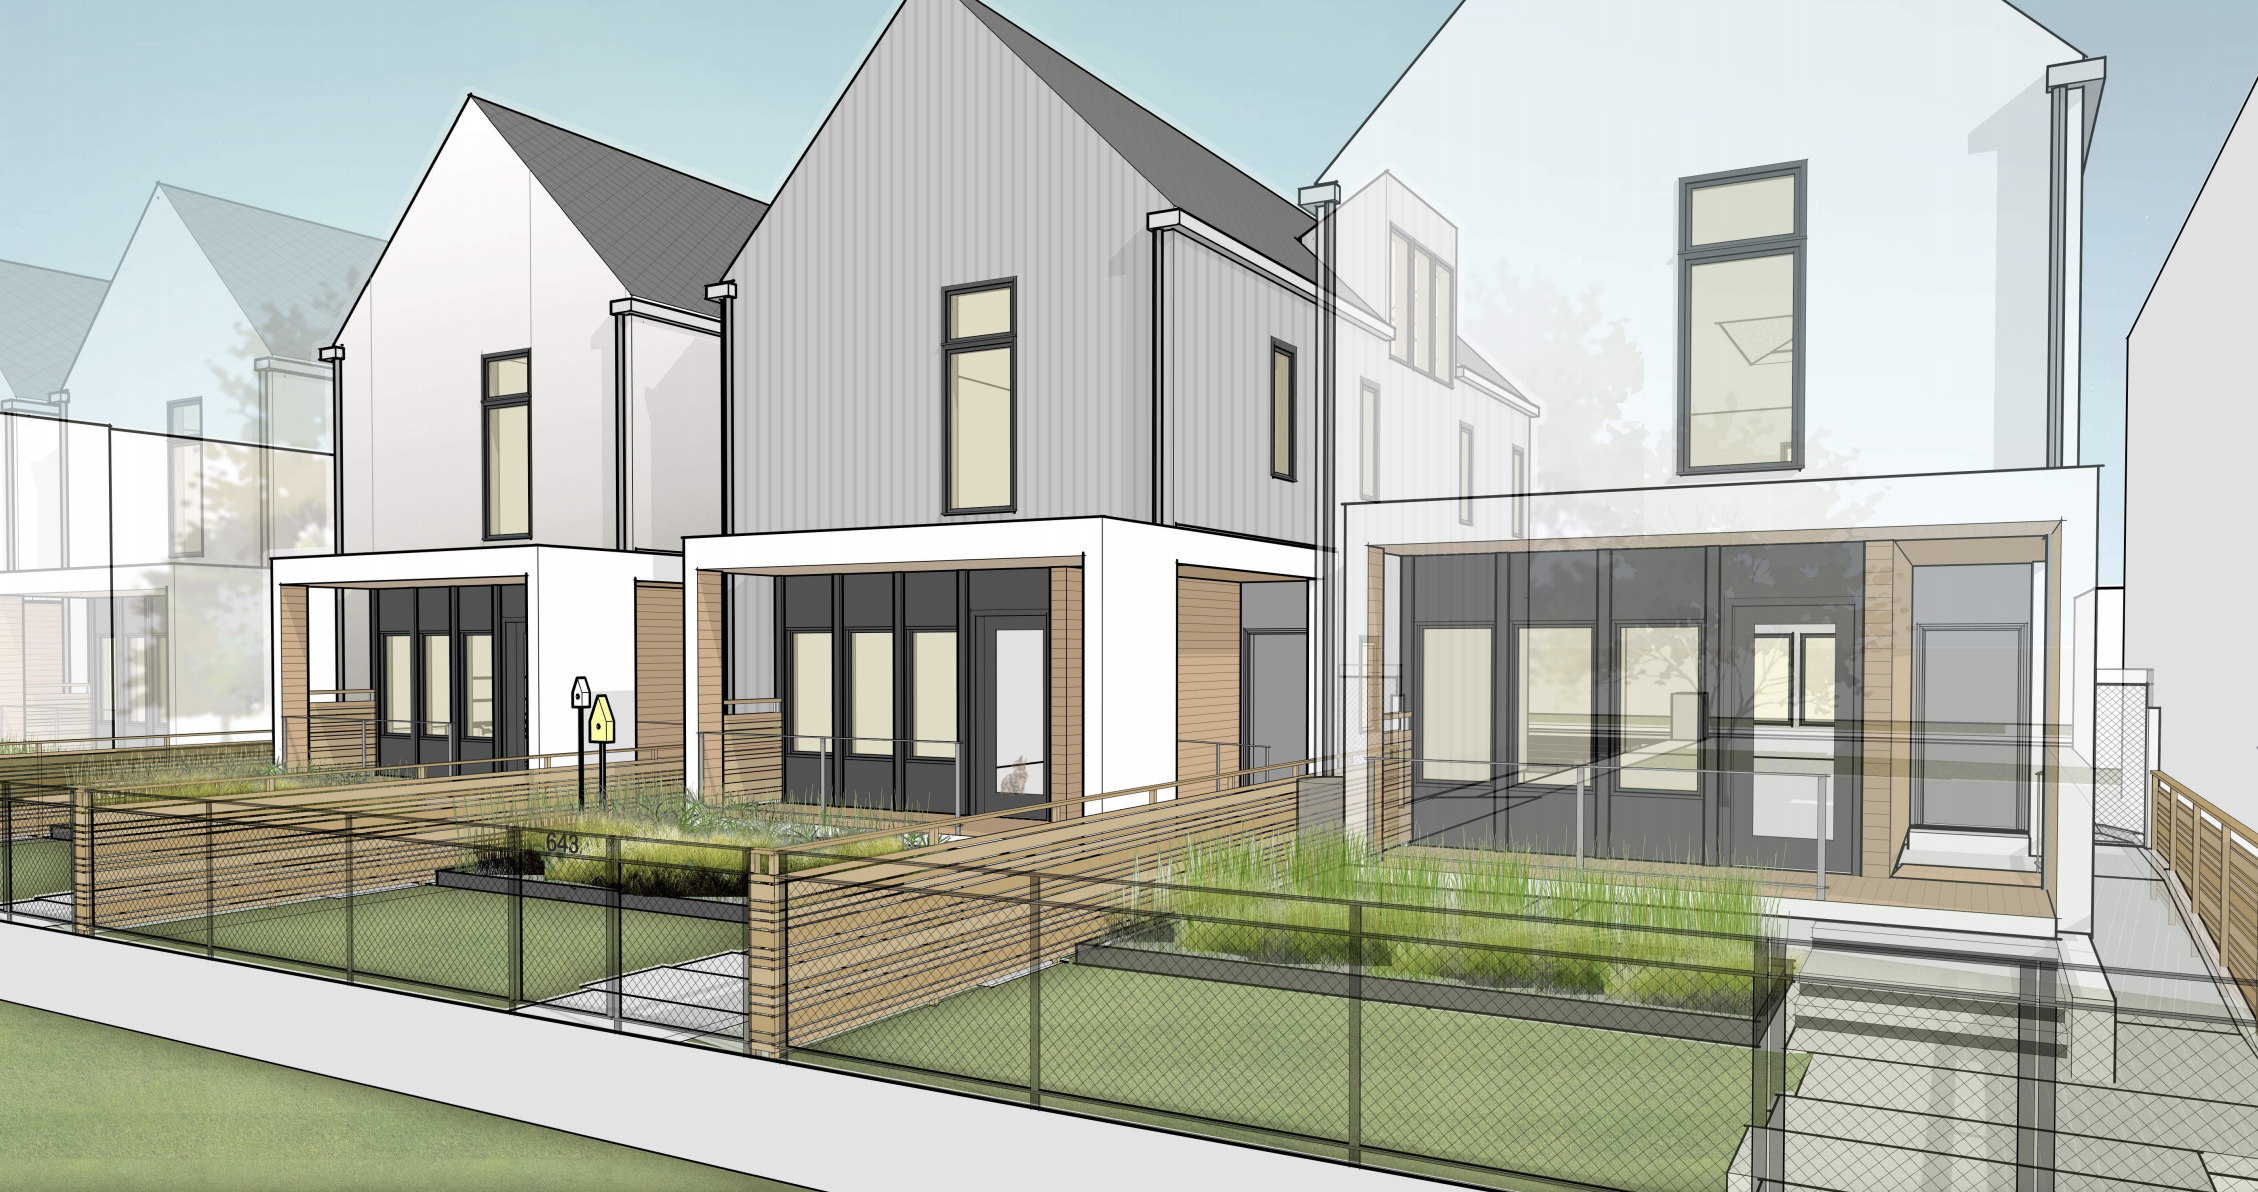 After design competition, architect will get to build vision for new Chicago two-flat